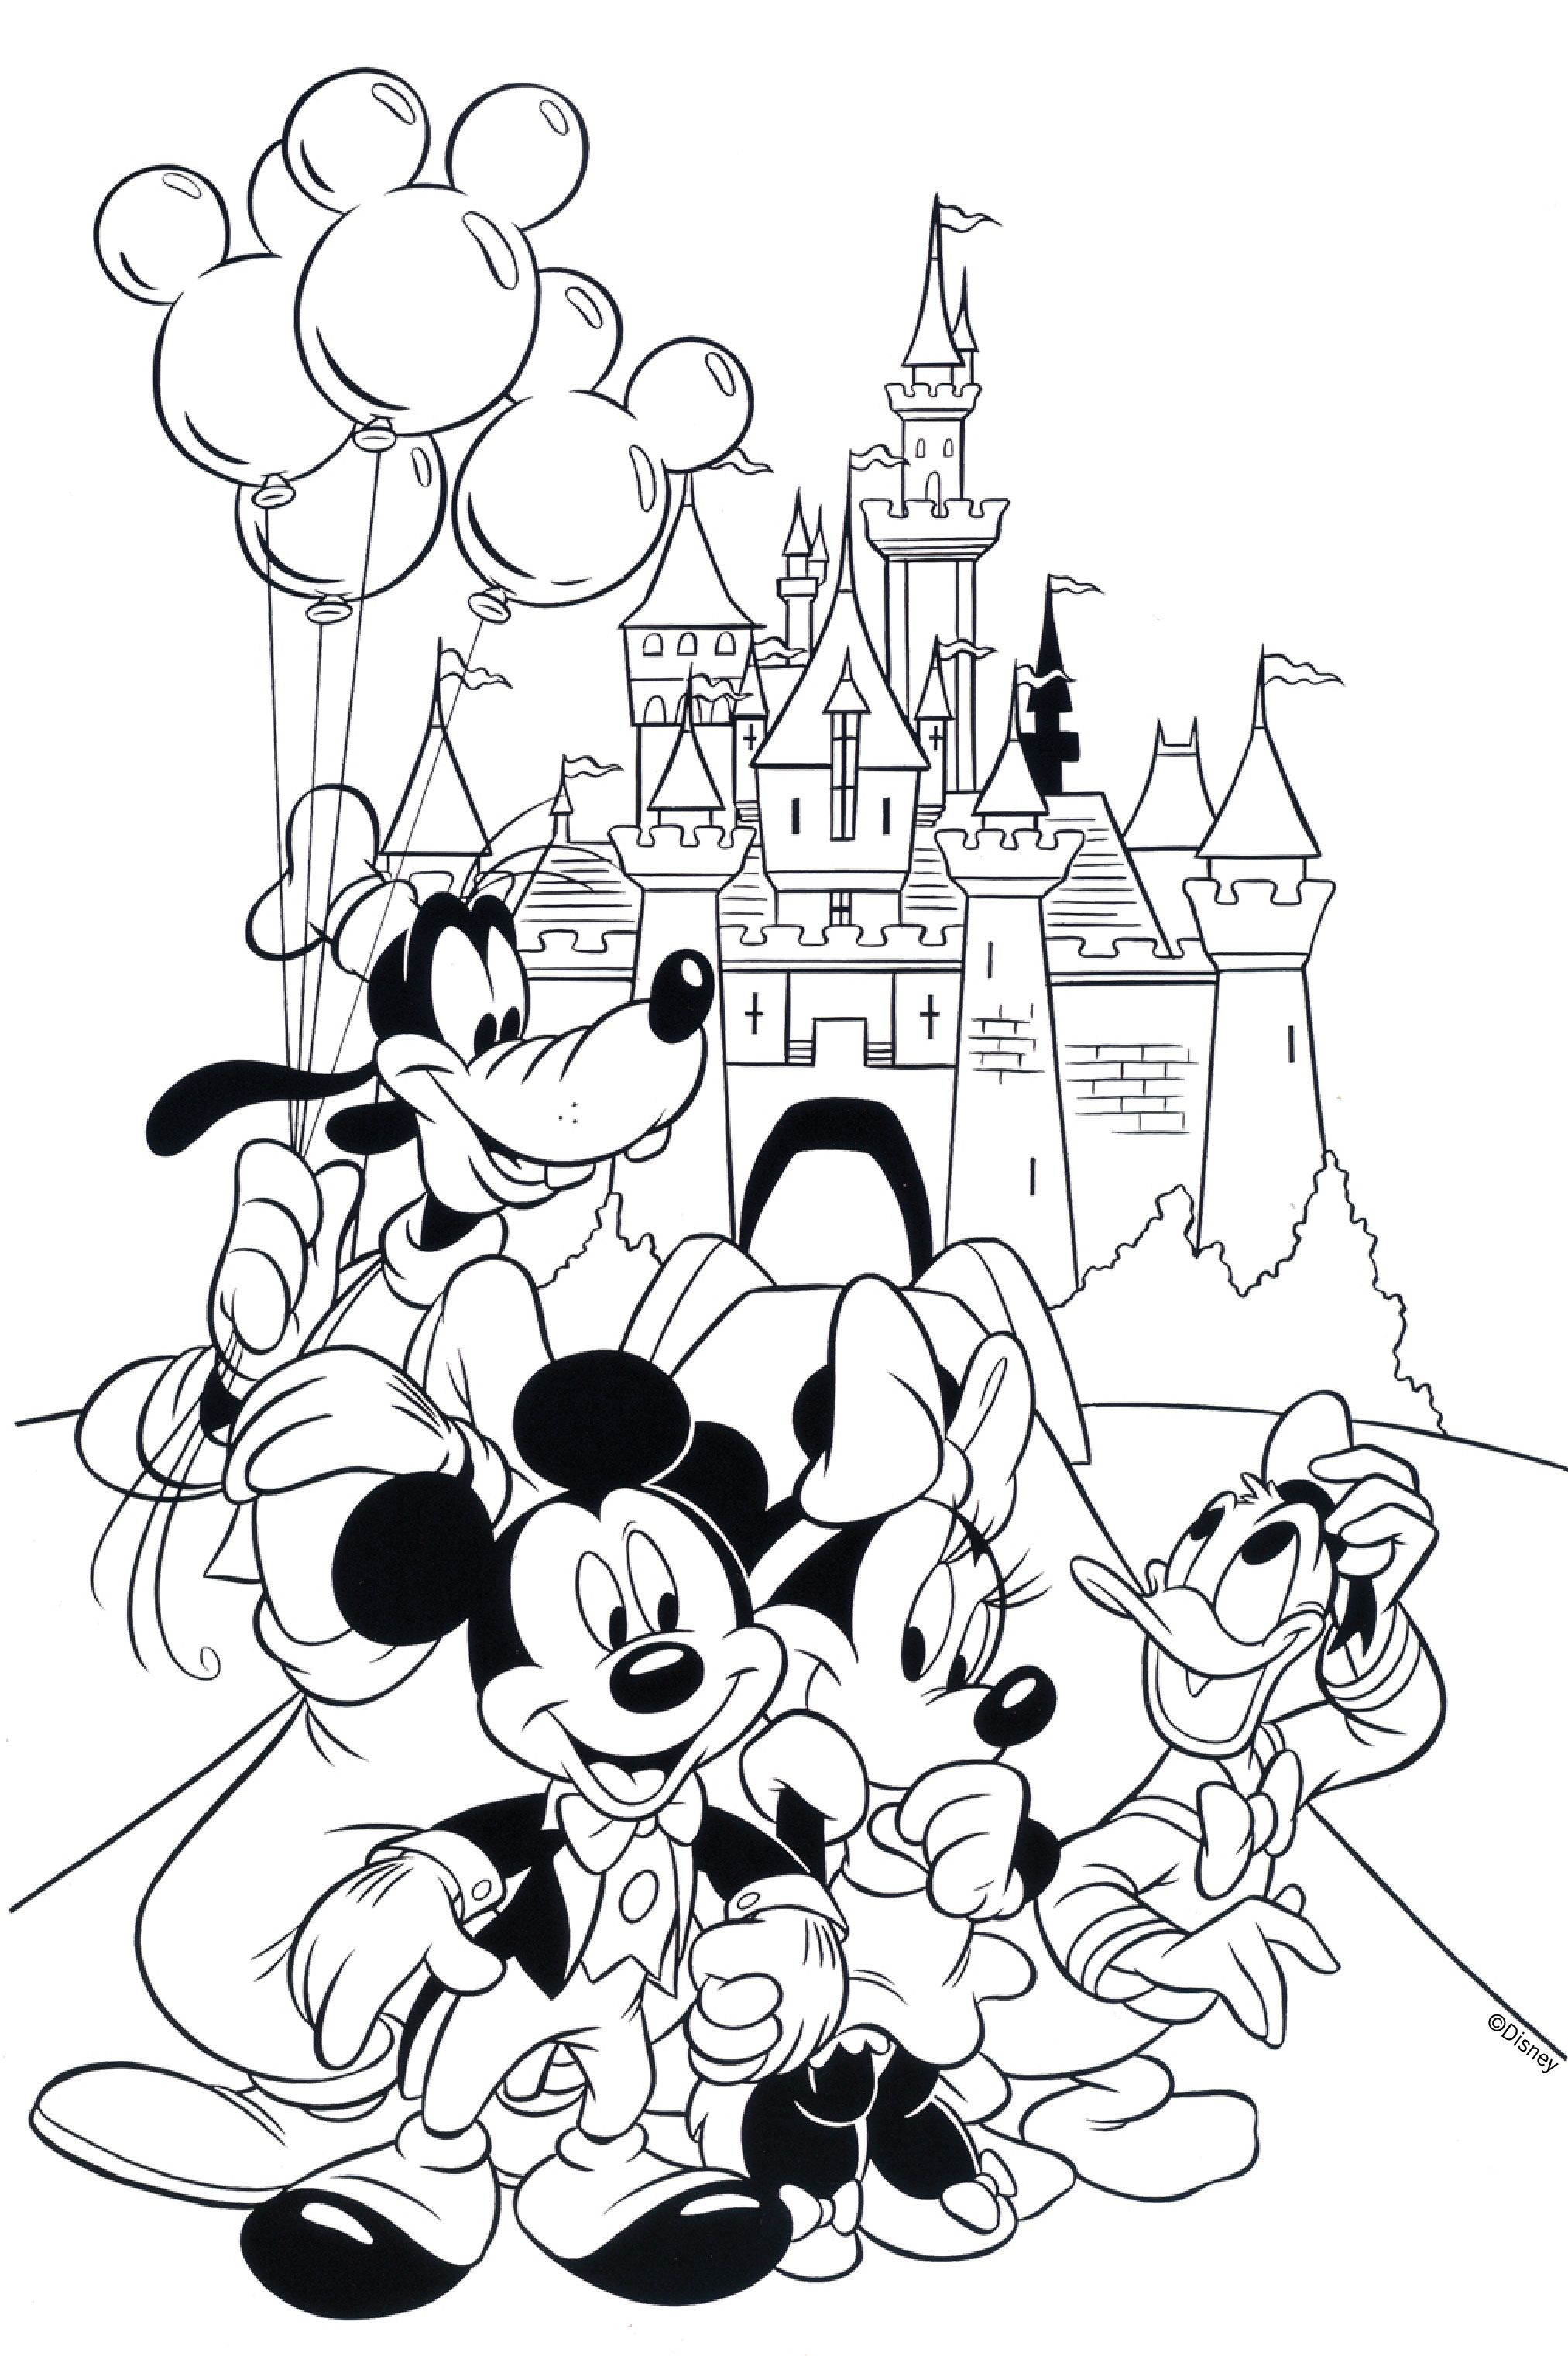 Free Disney Coloring Pages | Coloring Books | Pinterest | Free ...